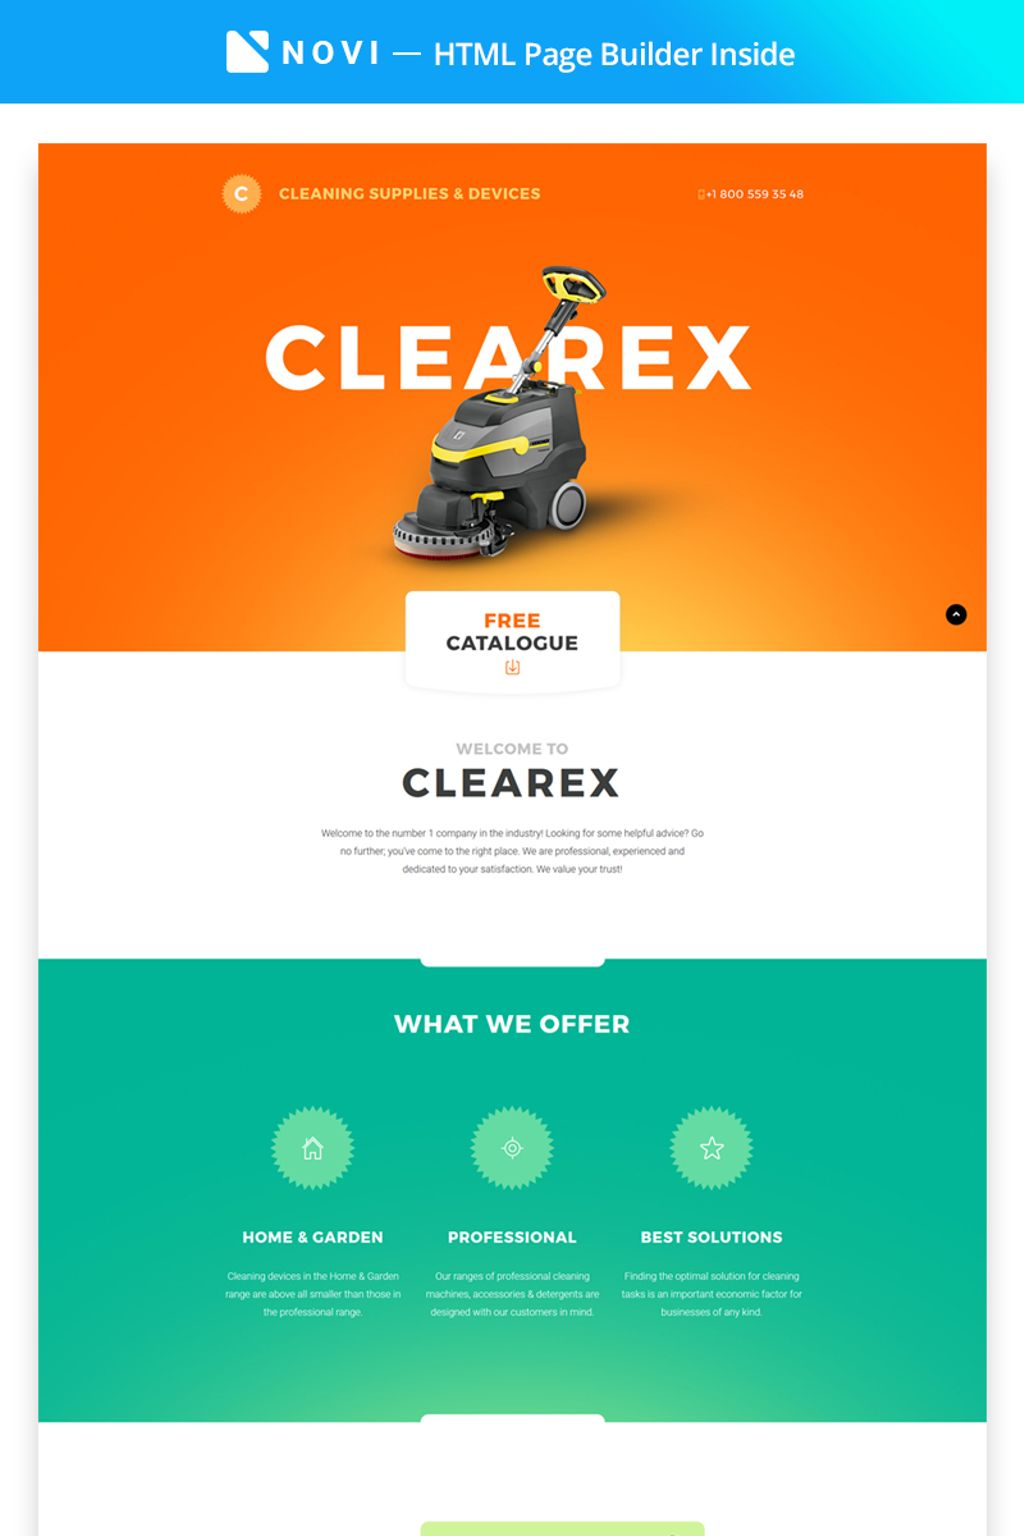 Clearex - Cleaning Supplies & Devices with Novi Builder Landing Page Template